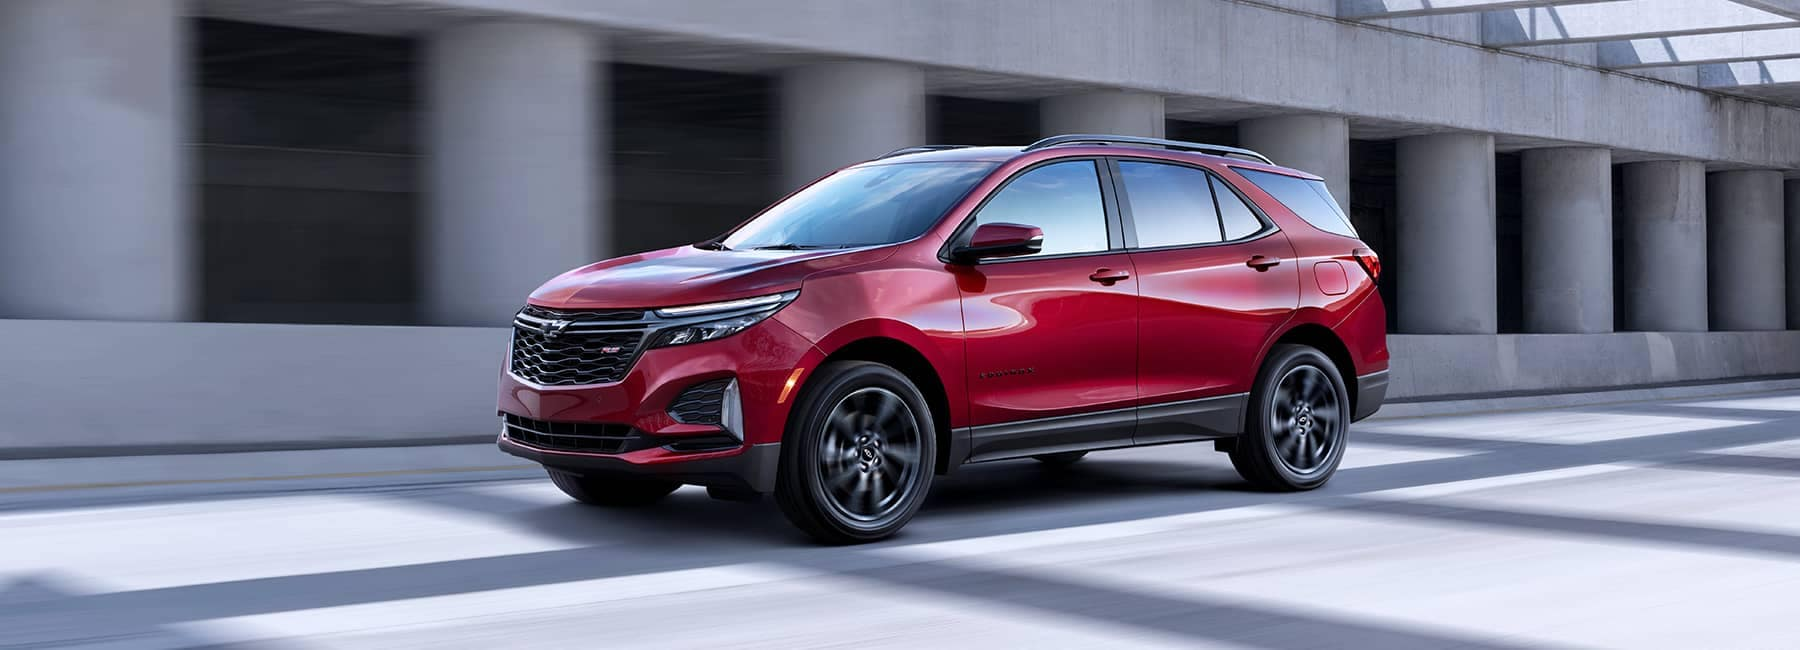 Red 2021 Chevrolet Equinox cruising in the concrete jungle